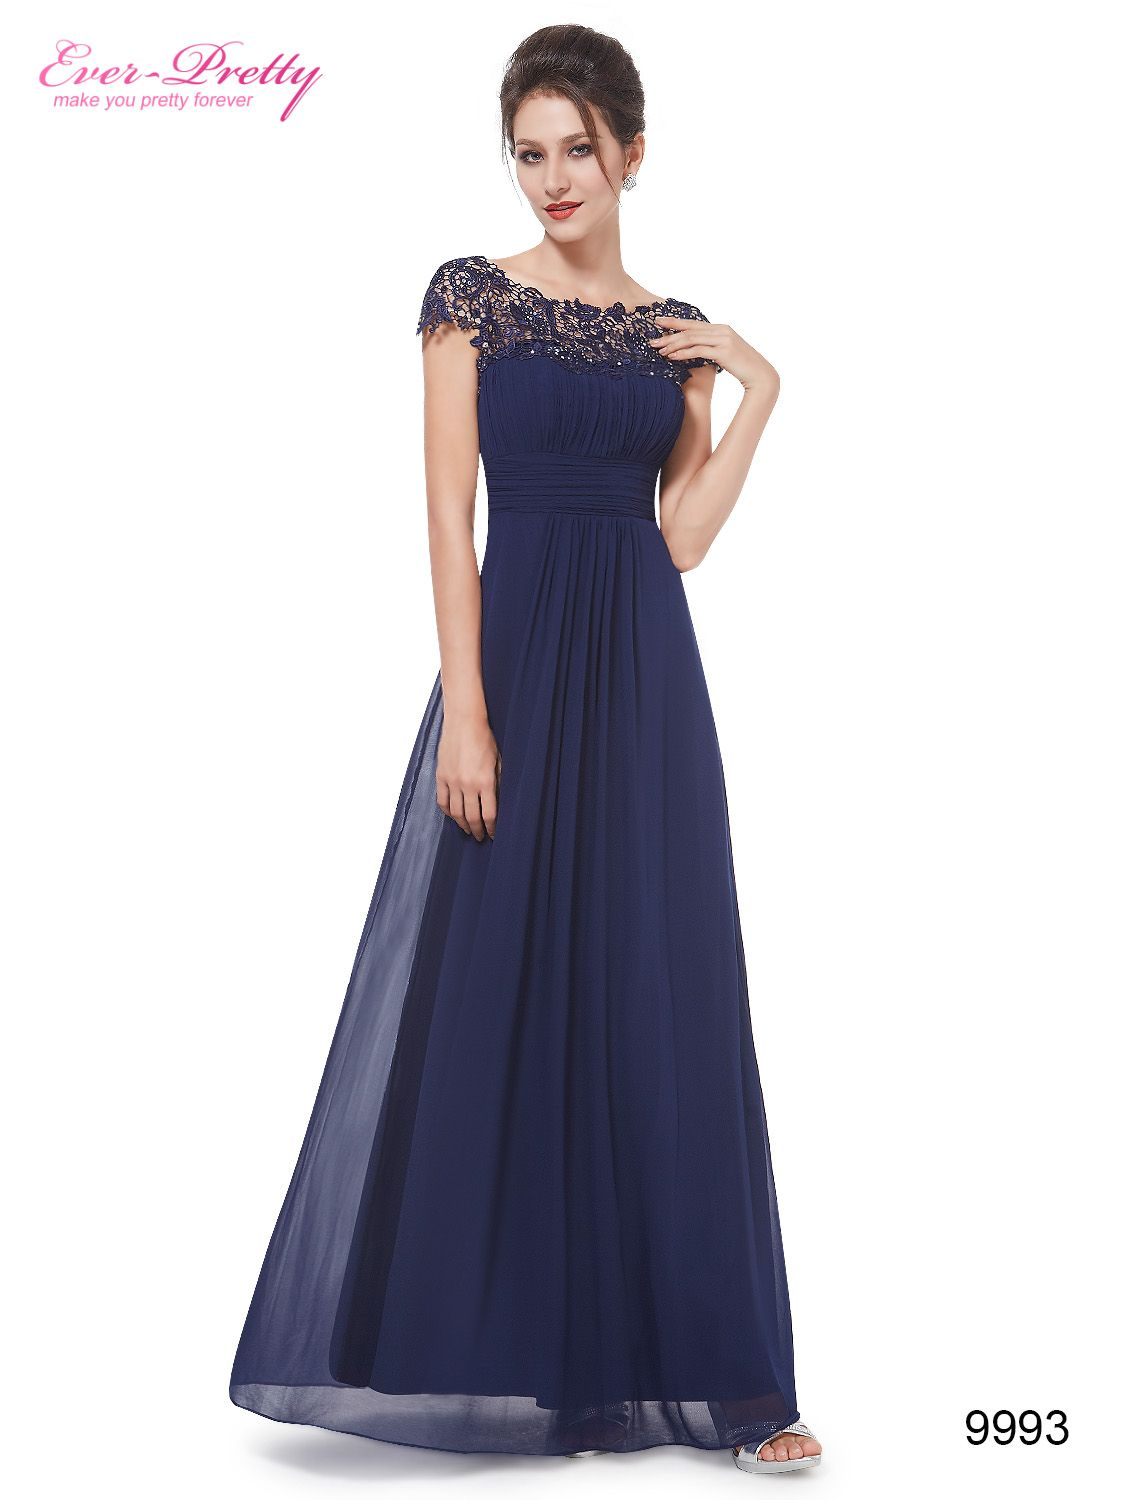 Lace Cap Sleeve Evening Gown | Abendkleid und Kleider